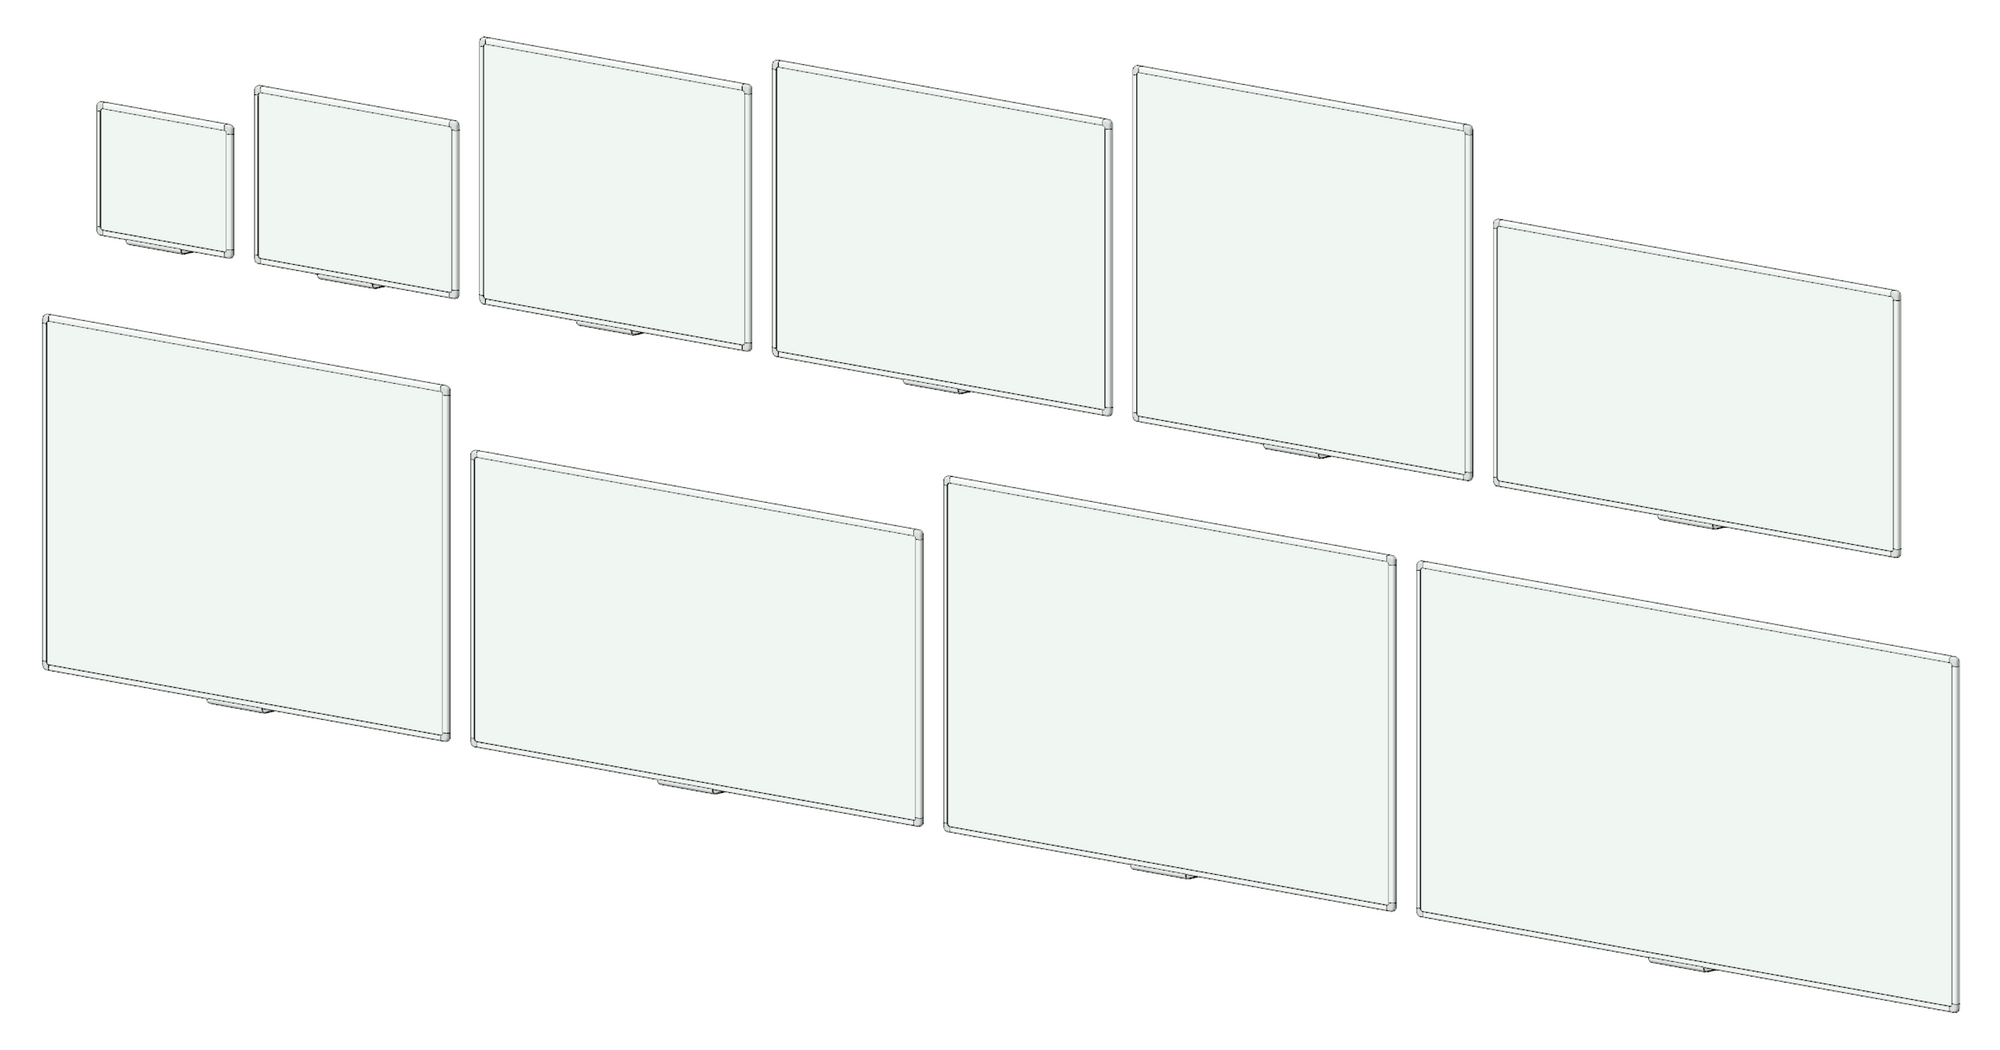 3D image showing whiteboards.